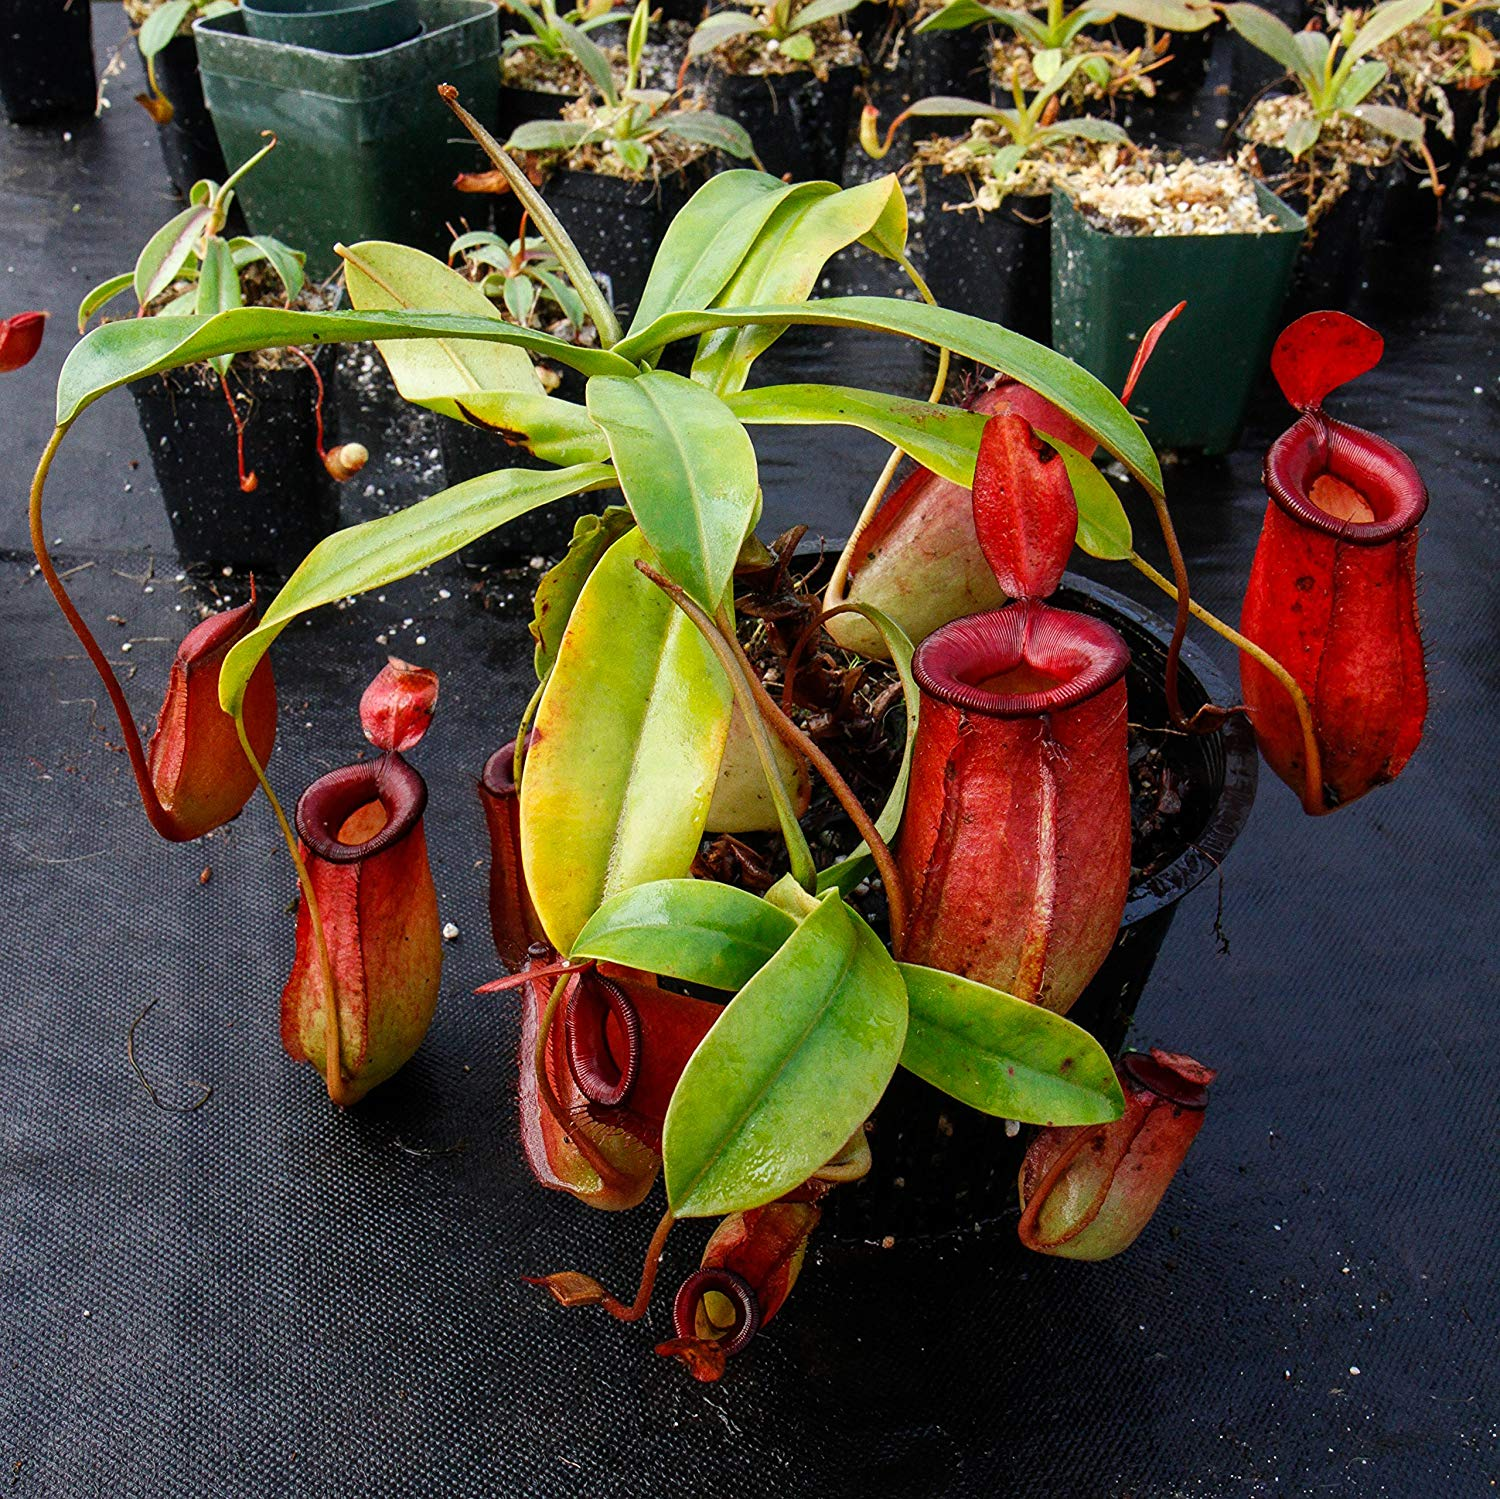 Nepenthes Bonsai Flowers Herbs Carnivorous Purify Air Catch Insect 50 PCS Seeds